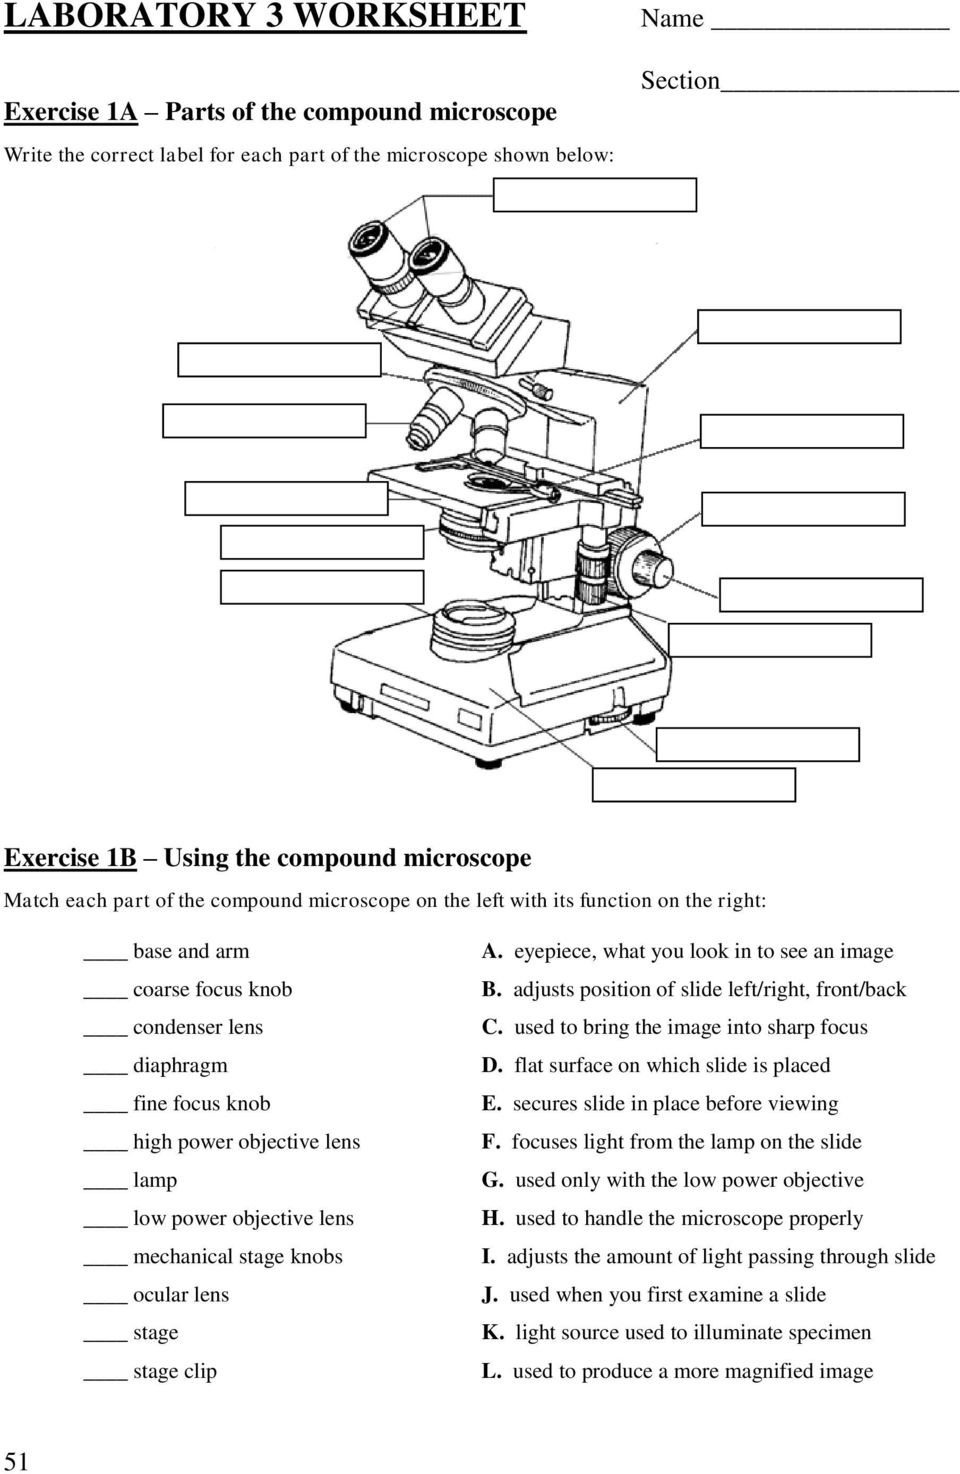 Lab 3 use of the microscope